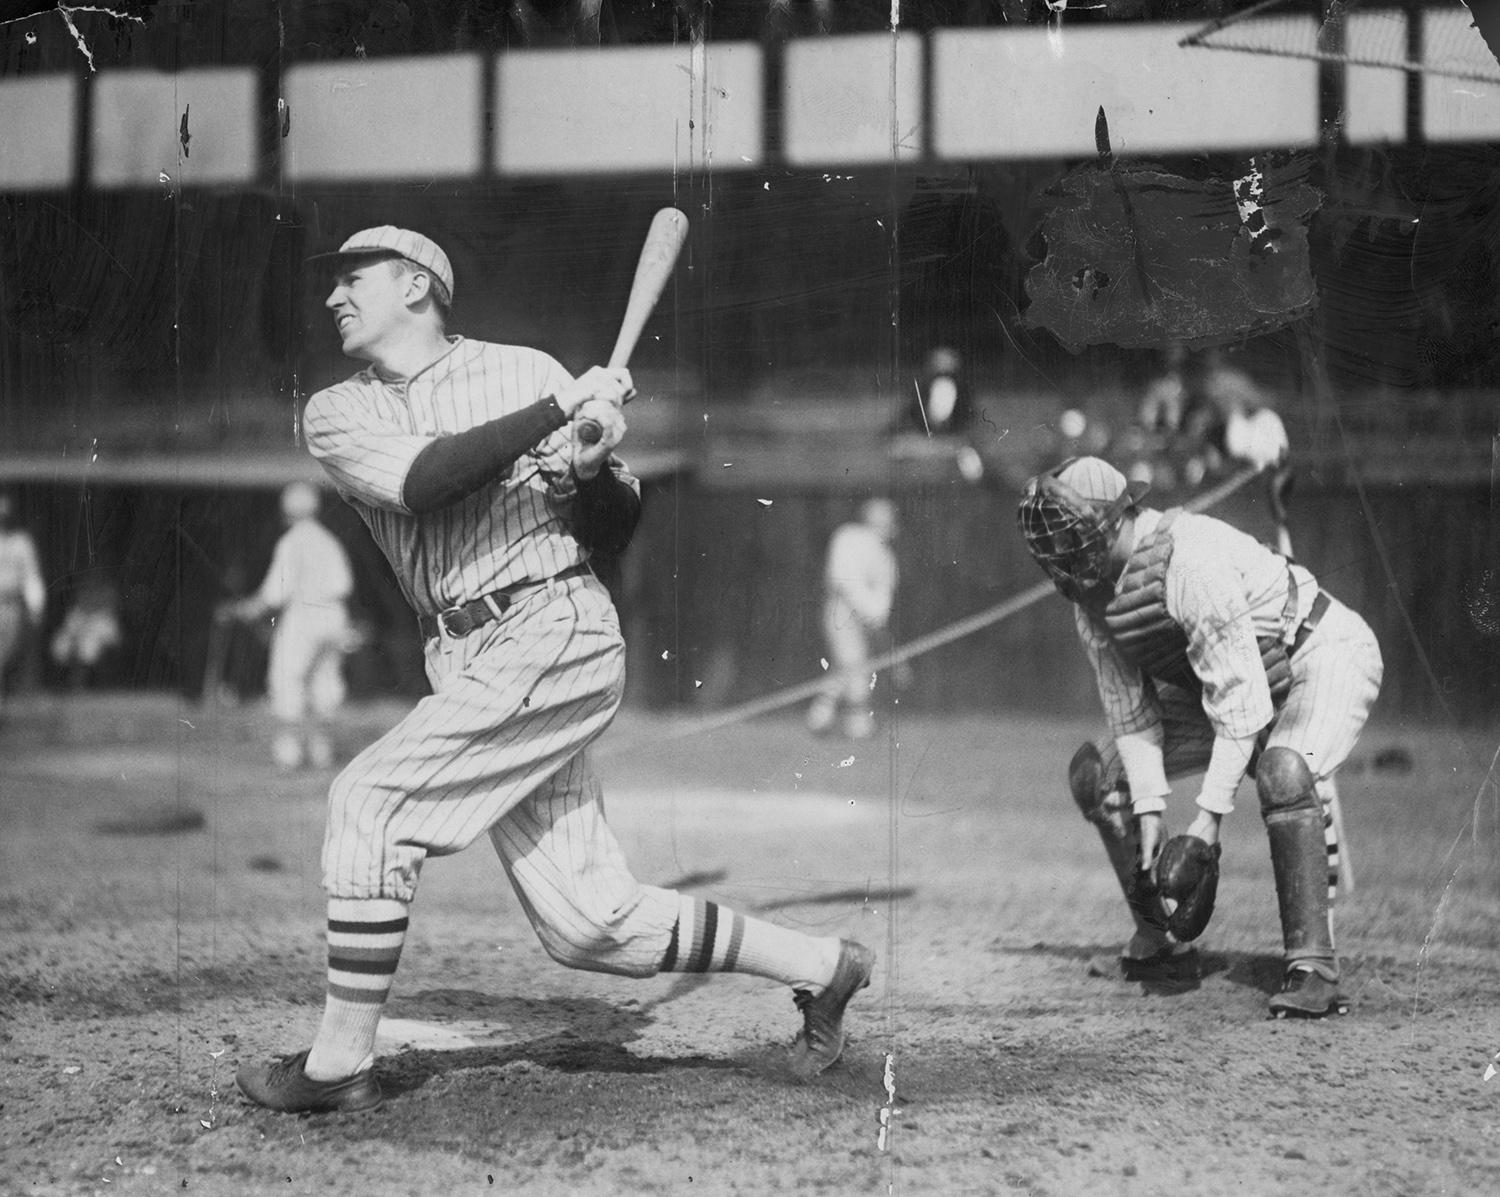 New research shows that in 1930, New York Giants third baseman Freddie Lindstrom went 59-for-123 (.480) with runners in scoring position, which is likely the top mark in the history of the game among fulltime players. (National Baseball Hall of Fame and Museum)